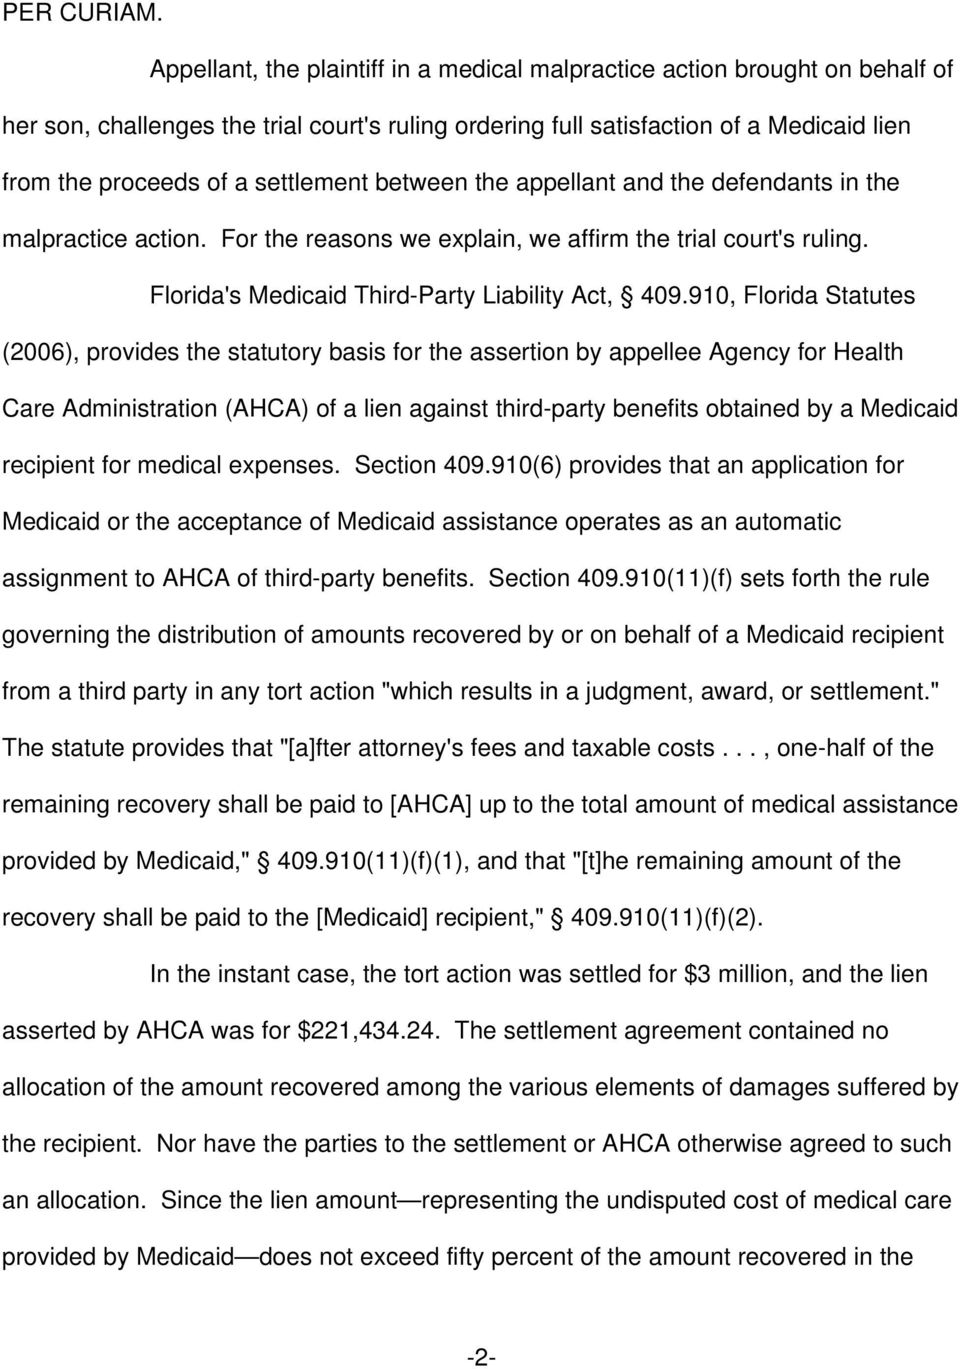 settlement between the appellant and the defendants in the malpractice action. For the reasons we explain, we affirm the trial court's ruling. Florida's Medicaid Third-Party Liability Act, 409.